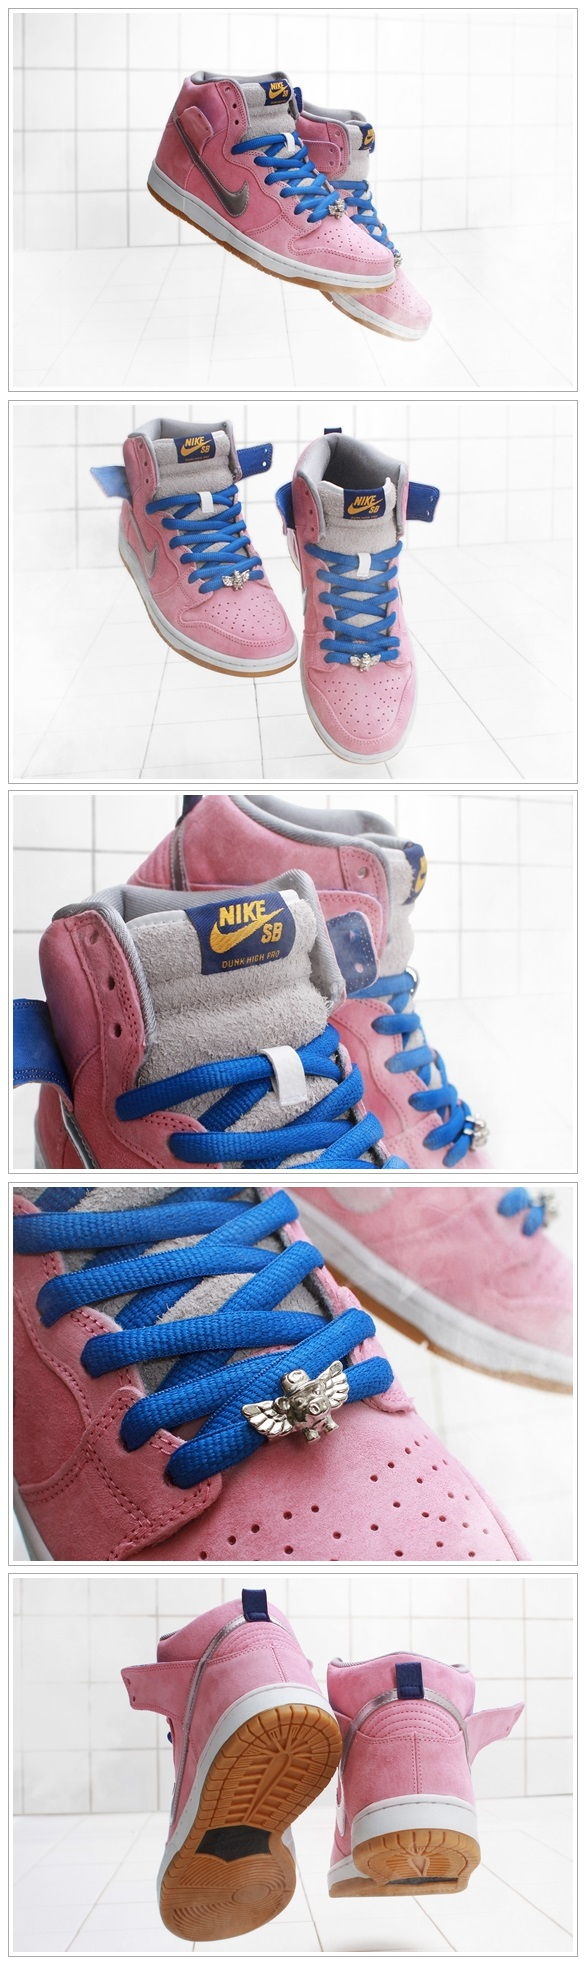 """Concepts x Nike SB Dunk """"When Pigs Fly""""  a5e556493"""